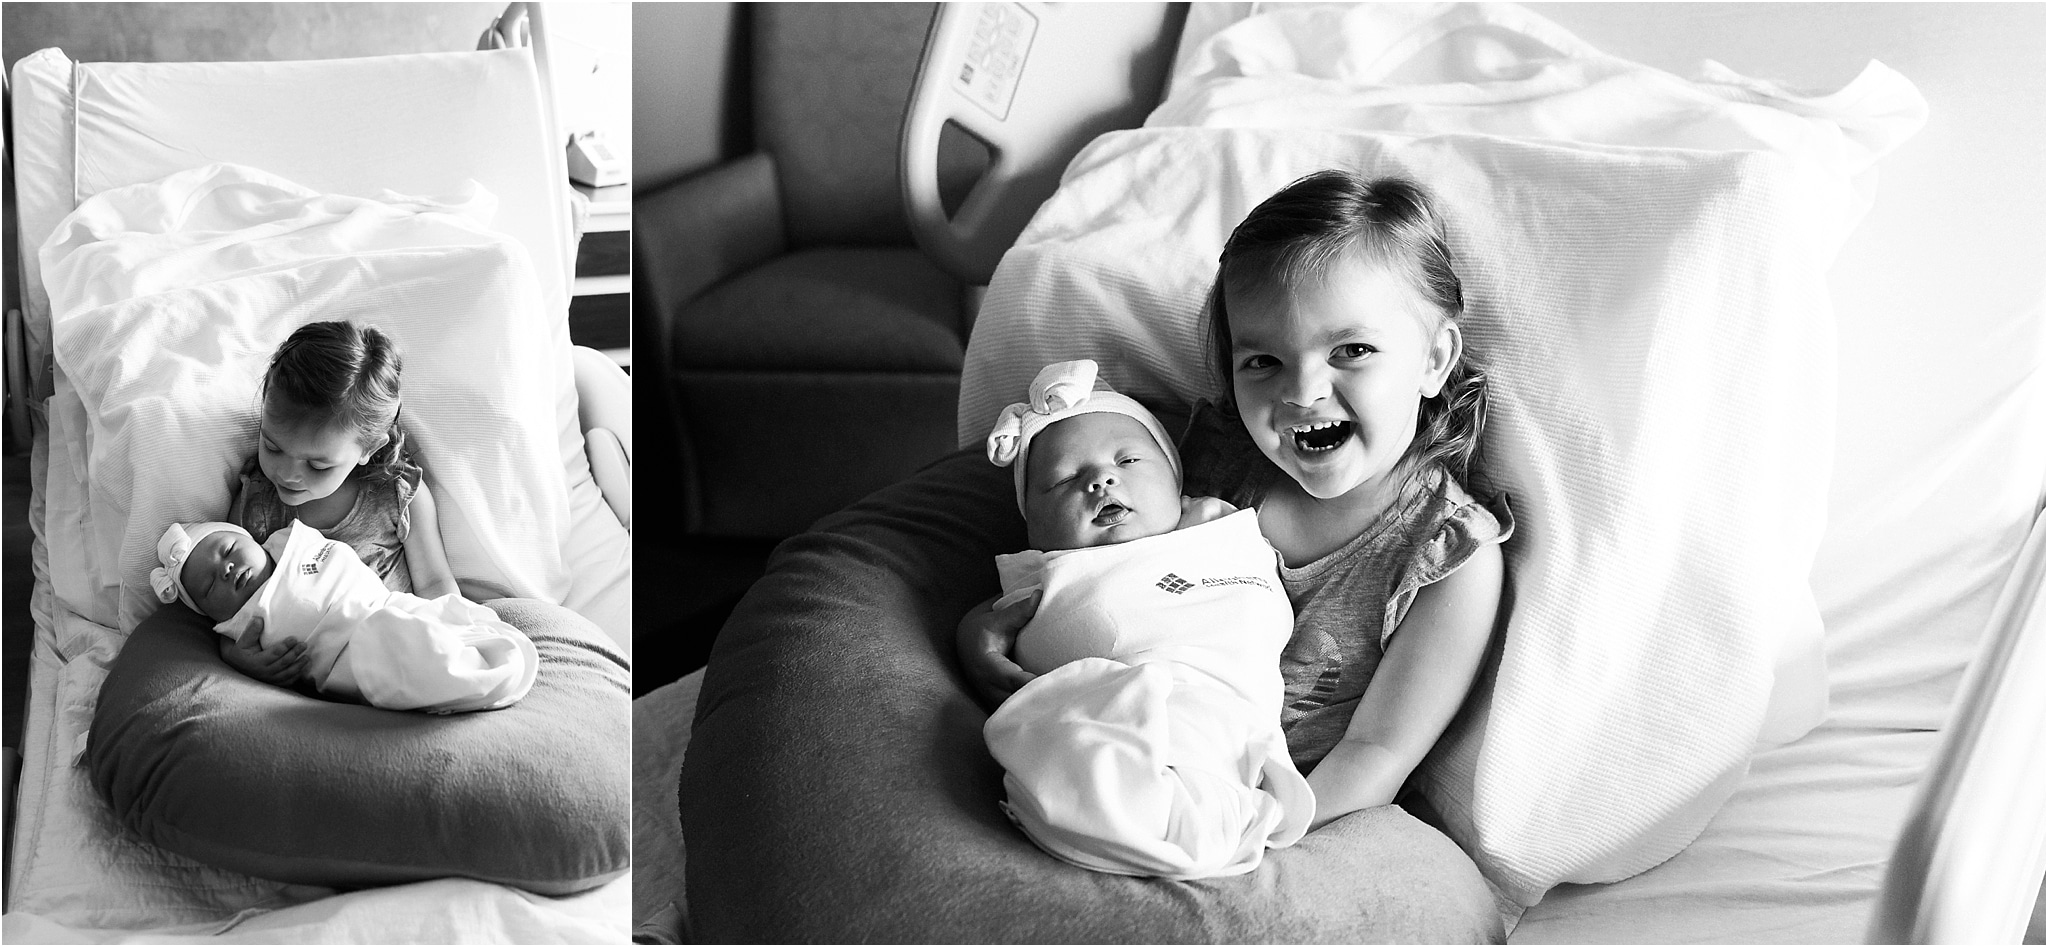 Big Sister Meeting and loving her new baby sister at the hospital